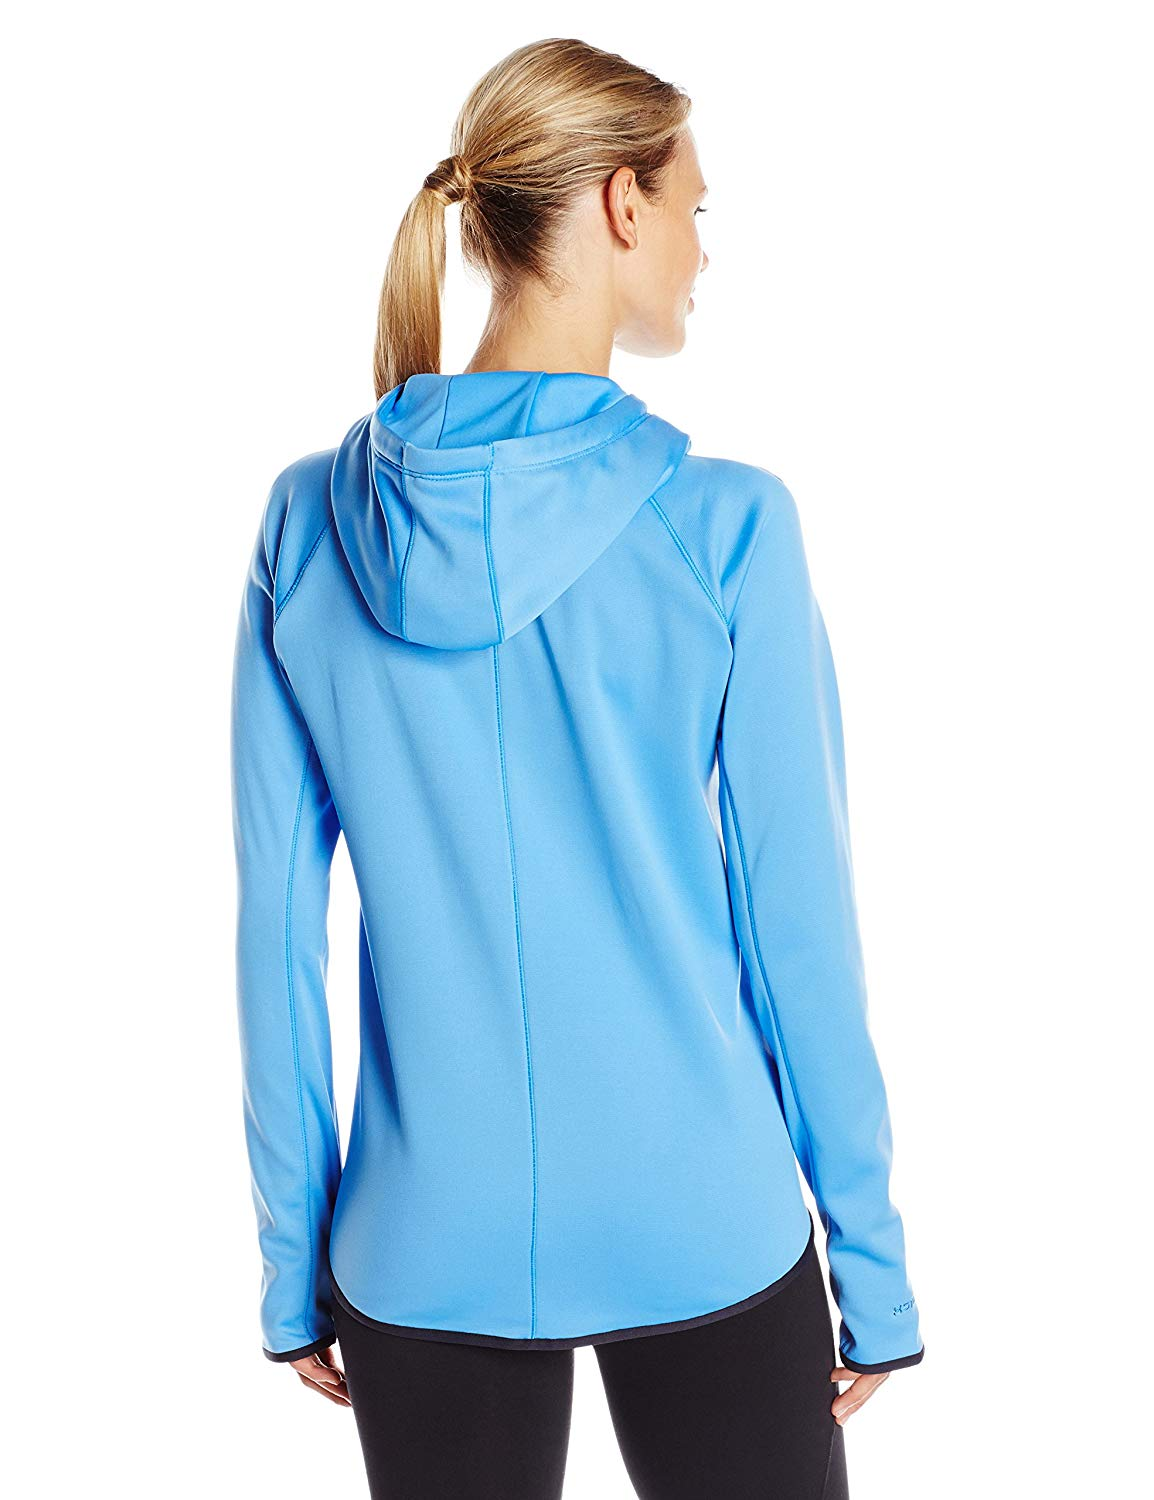 Under Armour Ladies Fleece Lightweight Full Zip Jacket